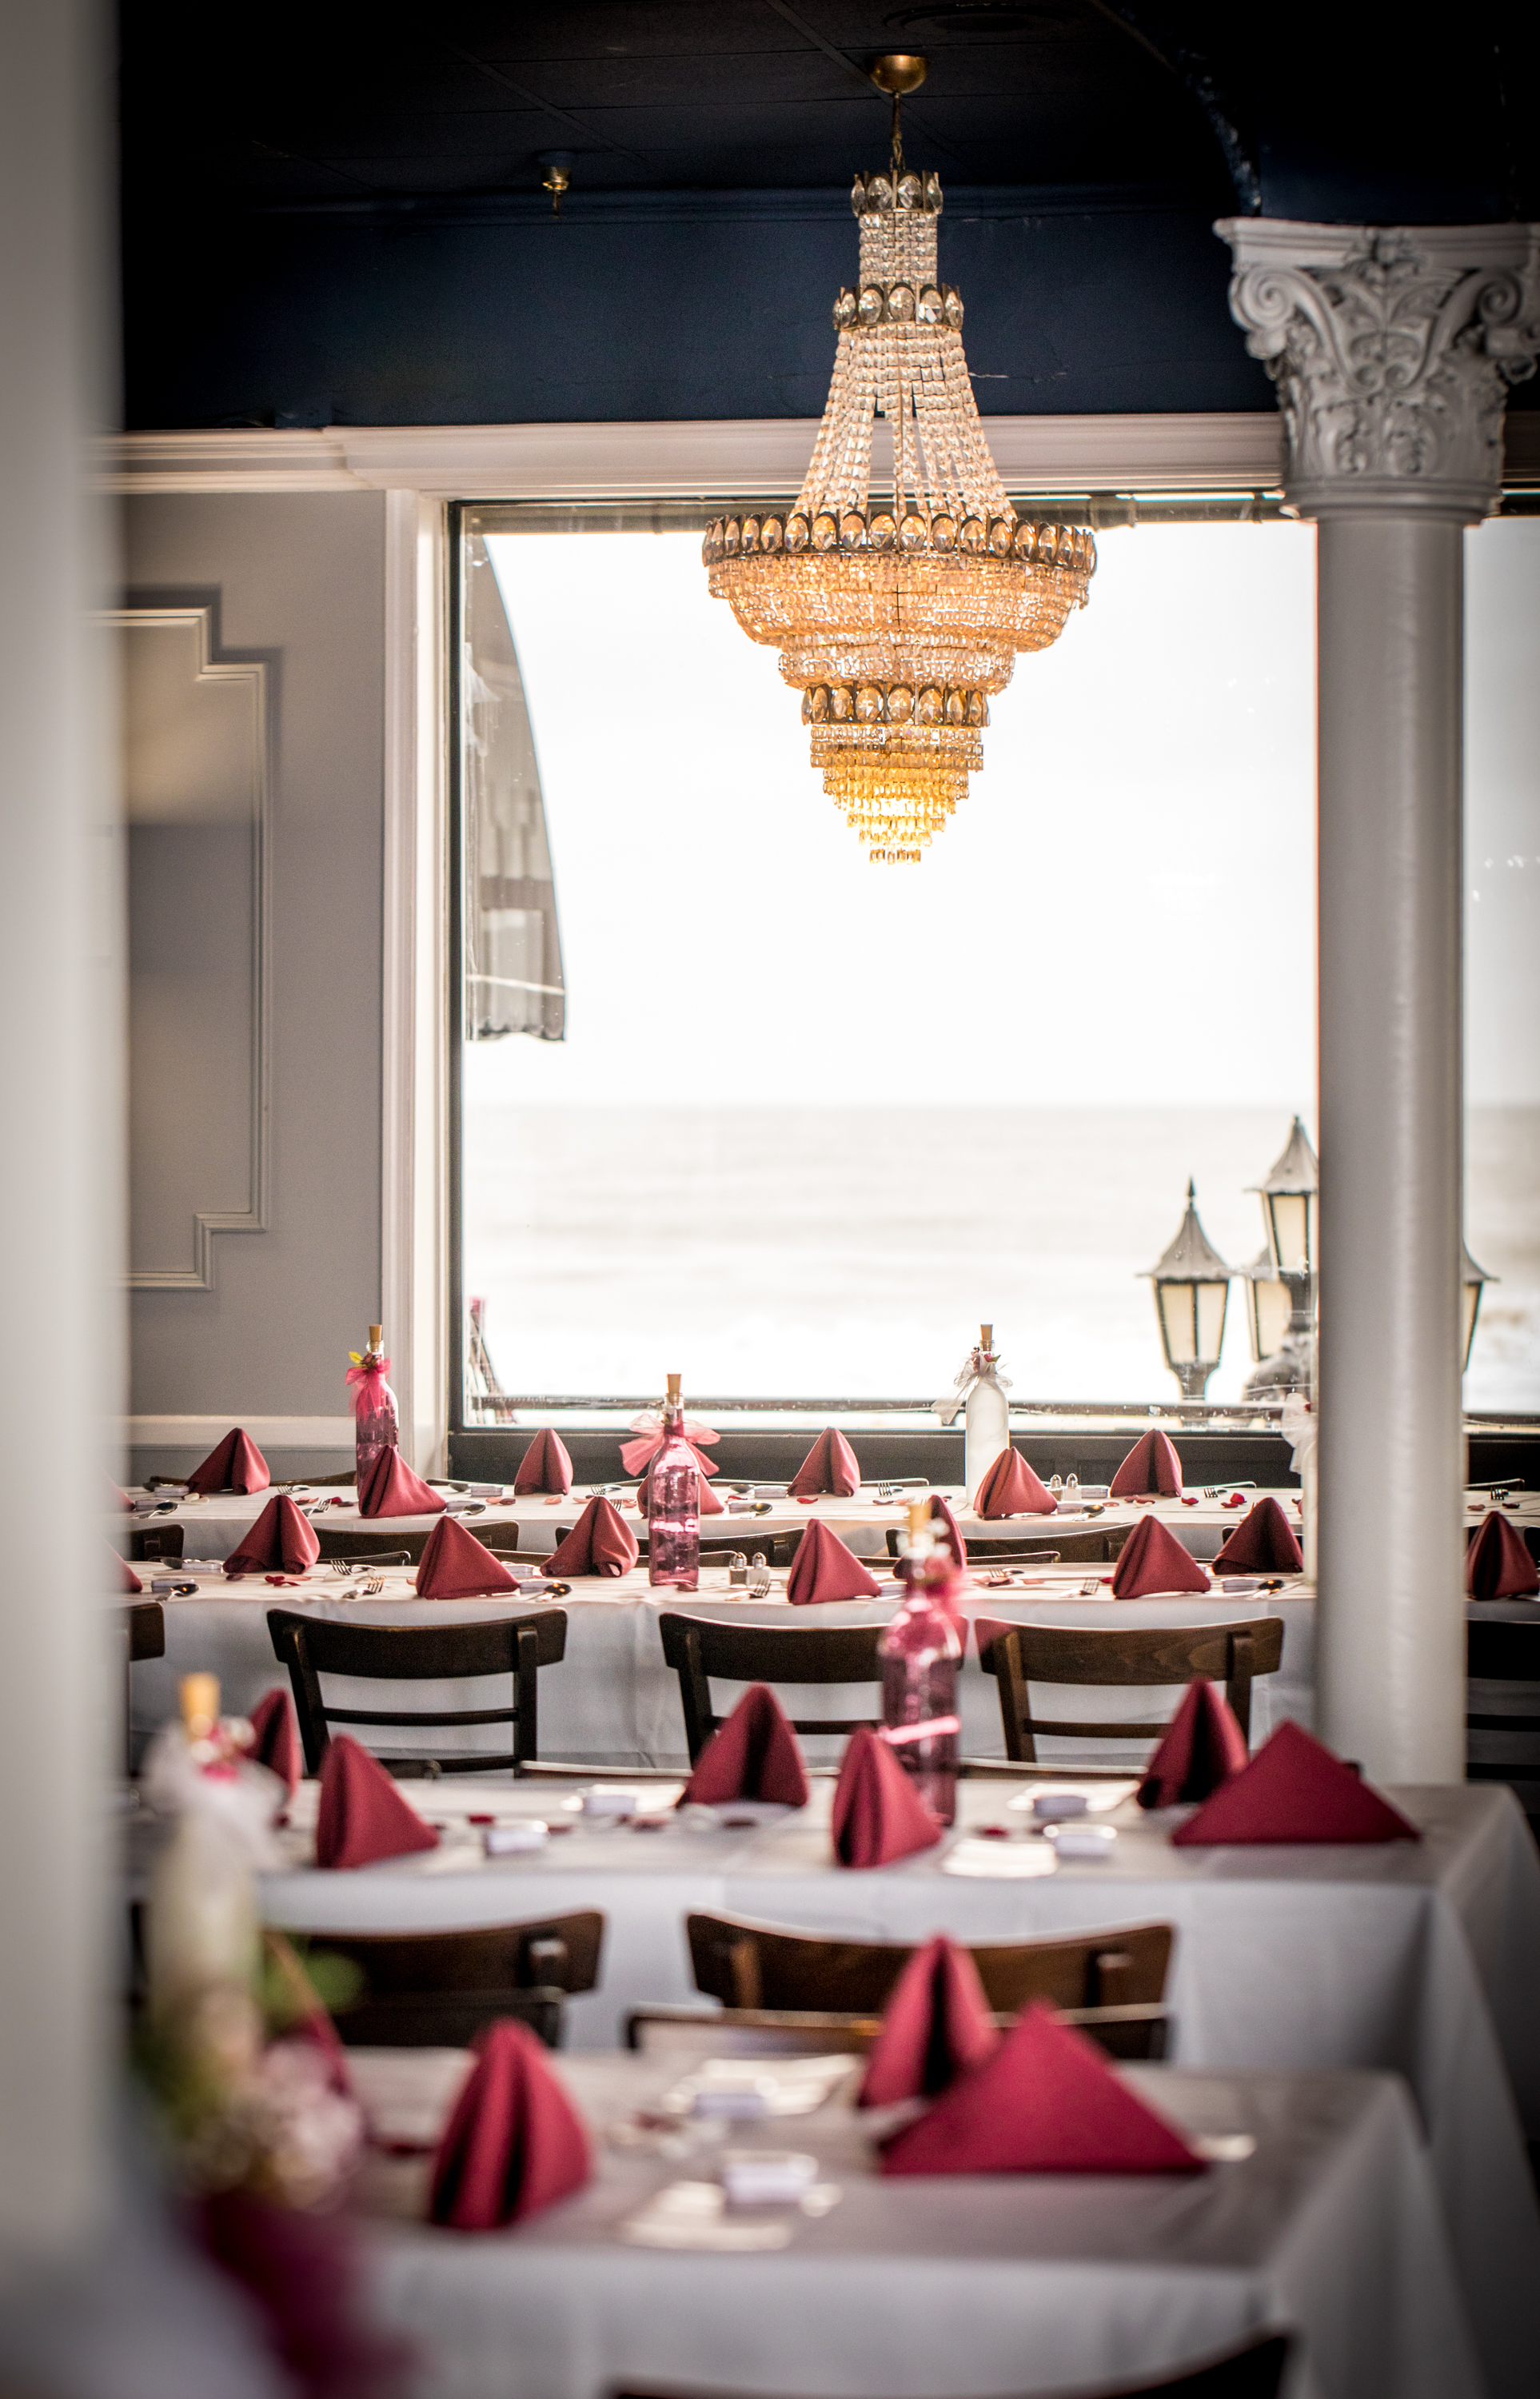 Ocean 13 wedding venue sits just off the boardwalk, offering beautiful panoramas of the Atlantic from Ocean City.